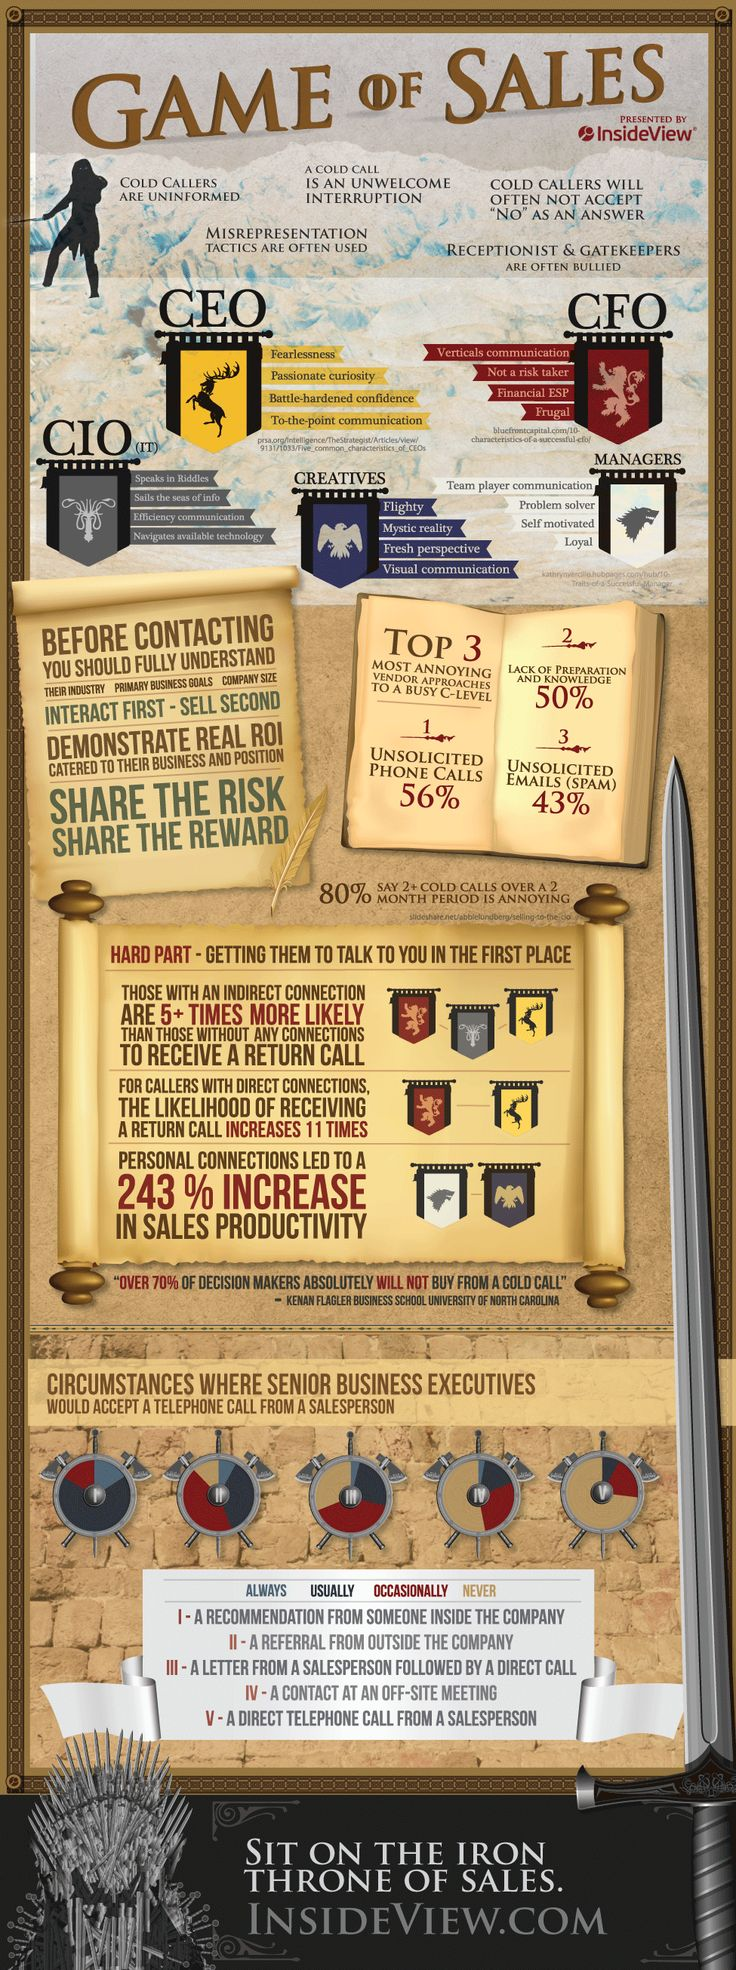 InsideView Infographic - Game of SalesMarketing Stuff, Infographic Knowledge, Social Media, Games Of Thrones, The Games, Media Infographic, Info Graphics, Awesome Infographic, Sales Infographic